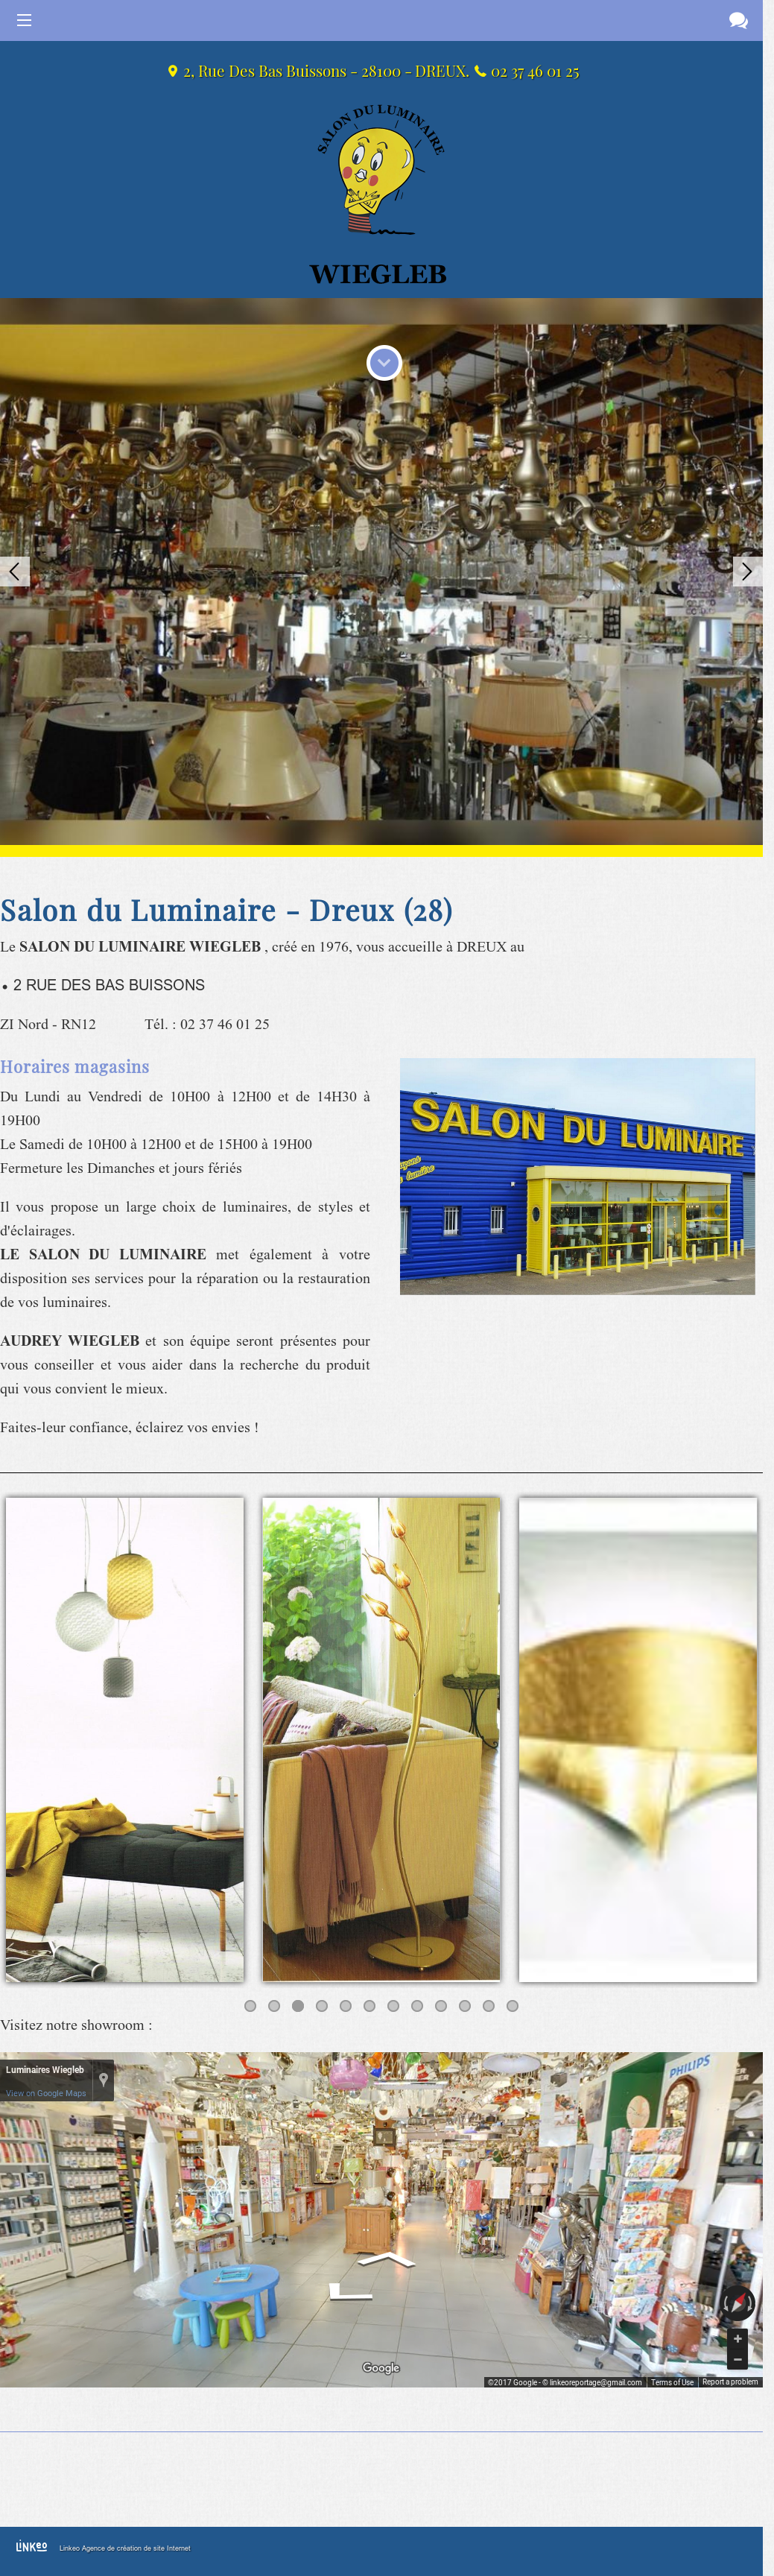 Superieur Salon Du Luminaire Competitors, Revenue And Employees   Owler Company  Profile